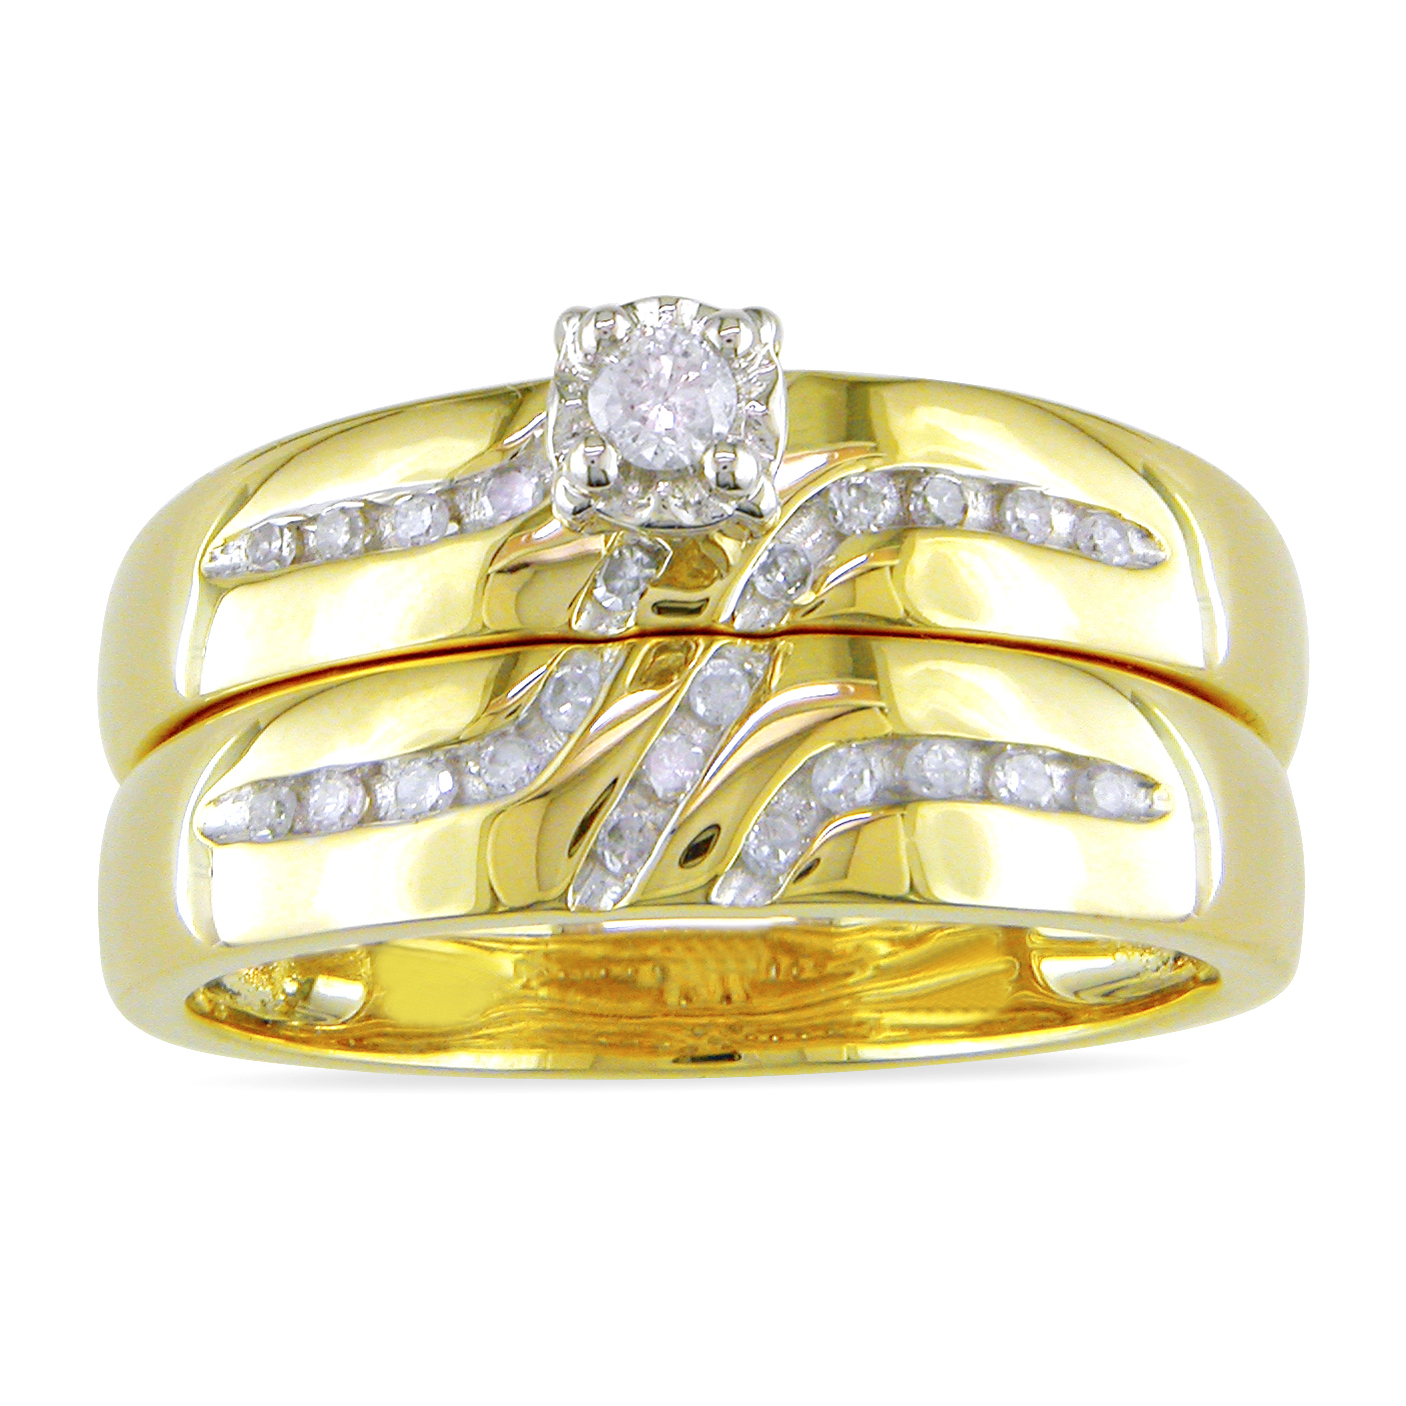 the charm of the yellow and white gold engagement rings